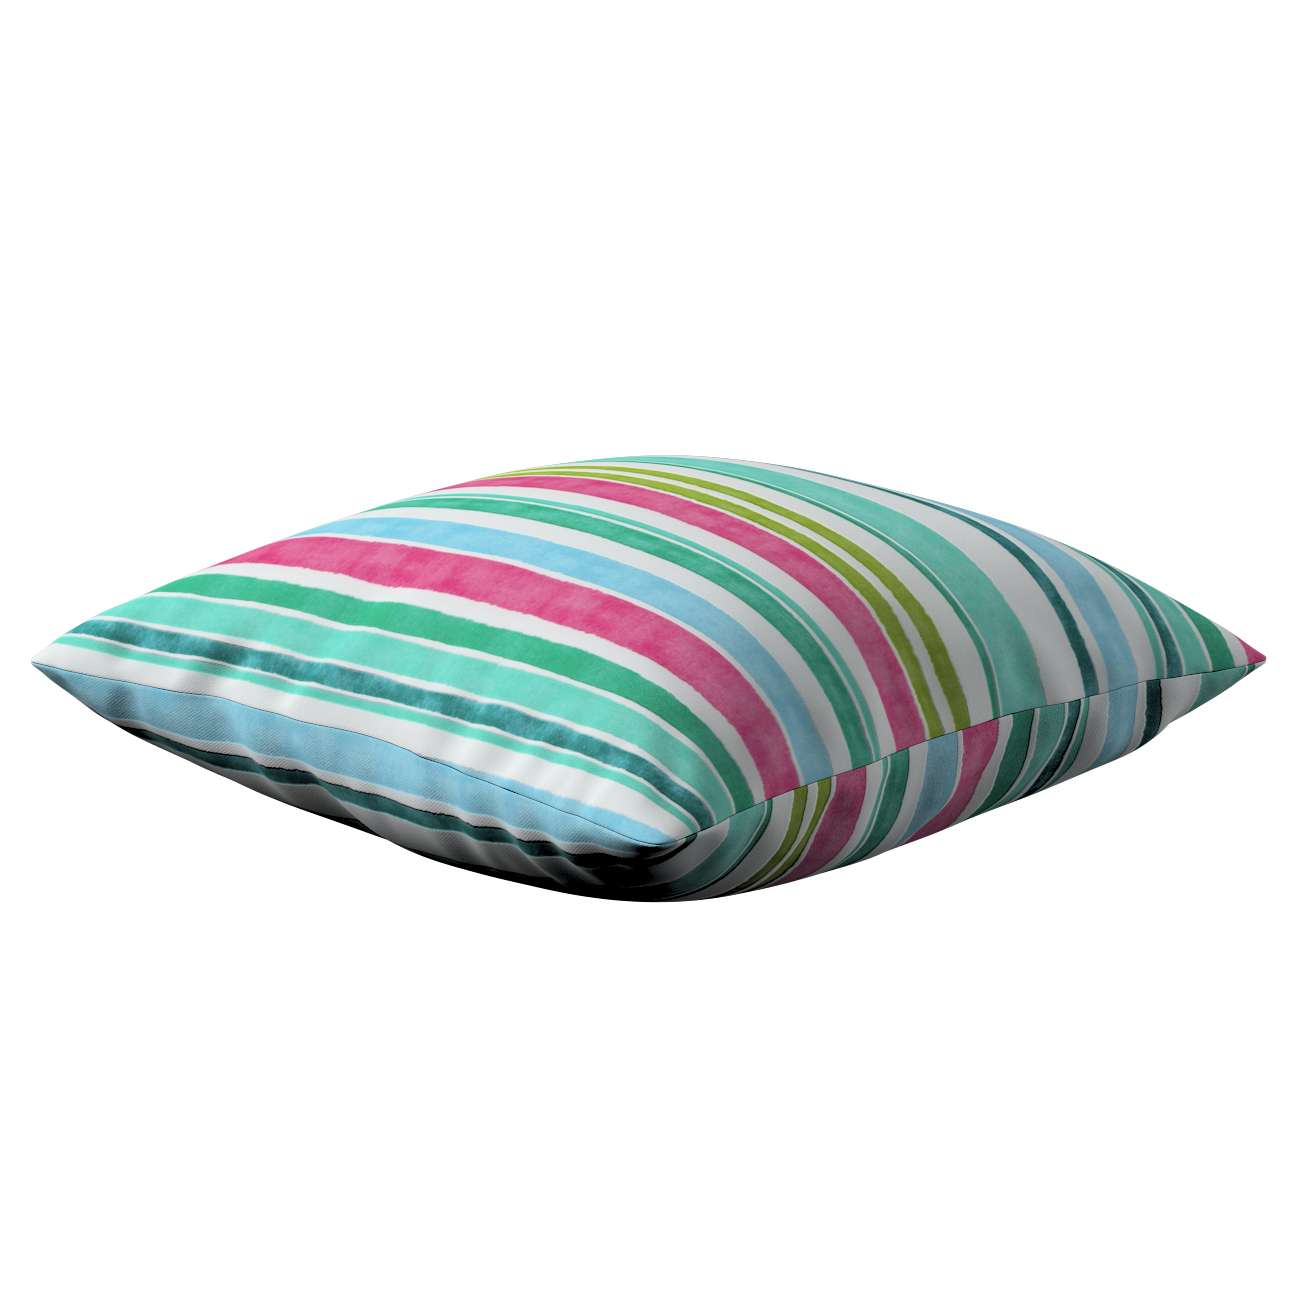 Kinga cushion cover 43 × 43 cm (17 × 17 inch) in collection Monet, fabric: 140-03